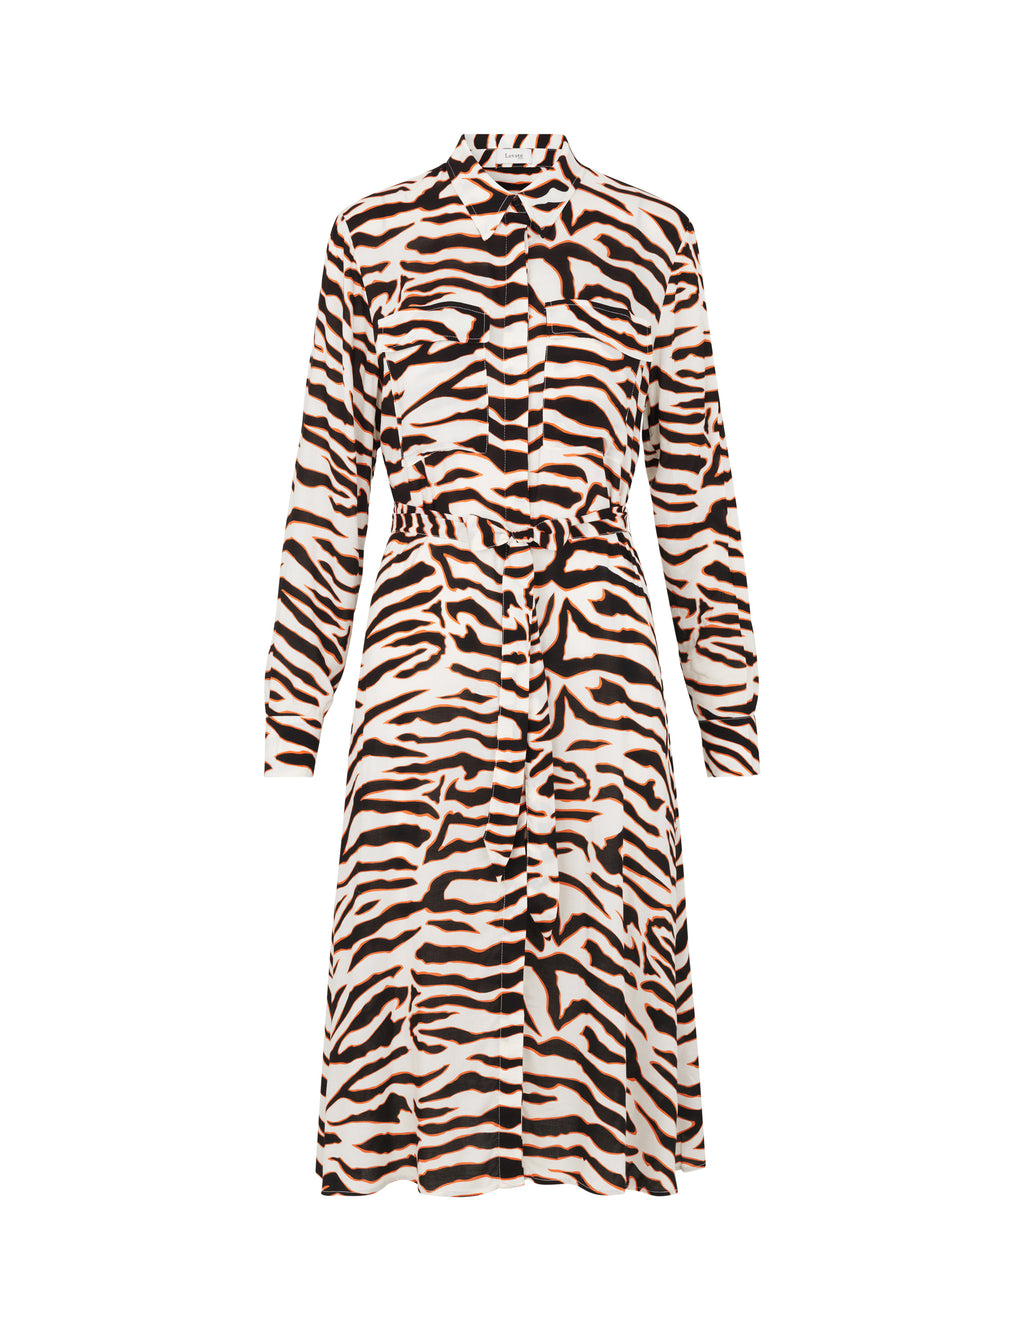 Levete Room Ivy Dress - Orange Zebra